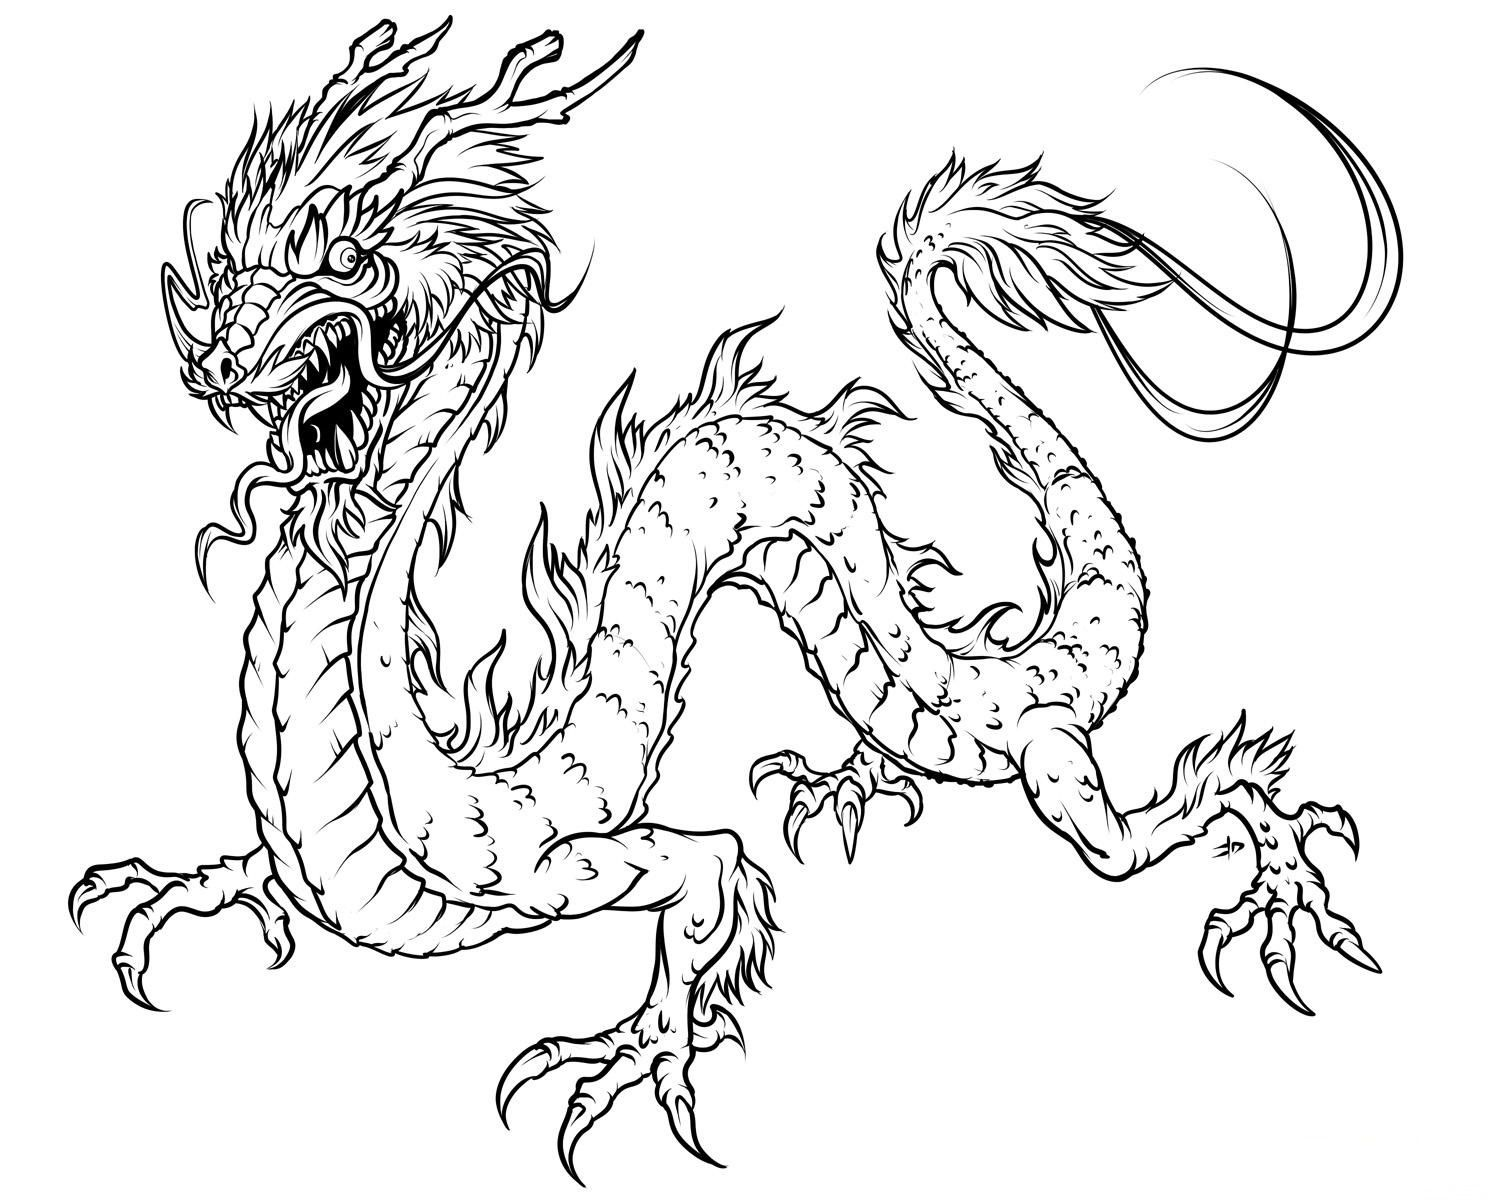 Free Printable Dragon Coloring Pages For Kids | Art | Dragon - Free Printable Chinese Dragon Coloring Pages